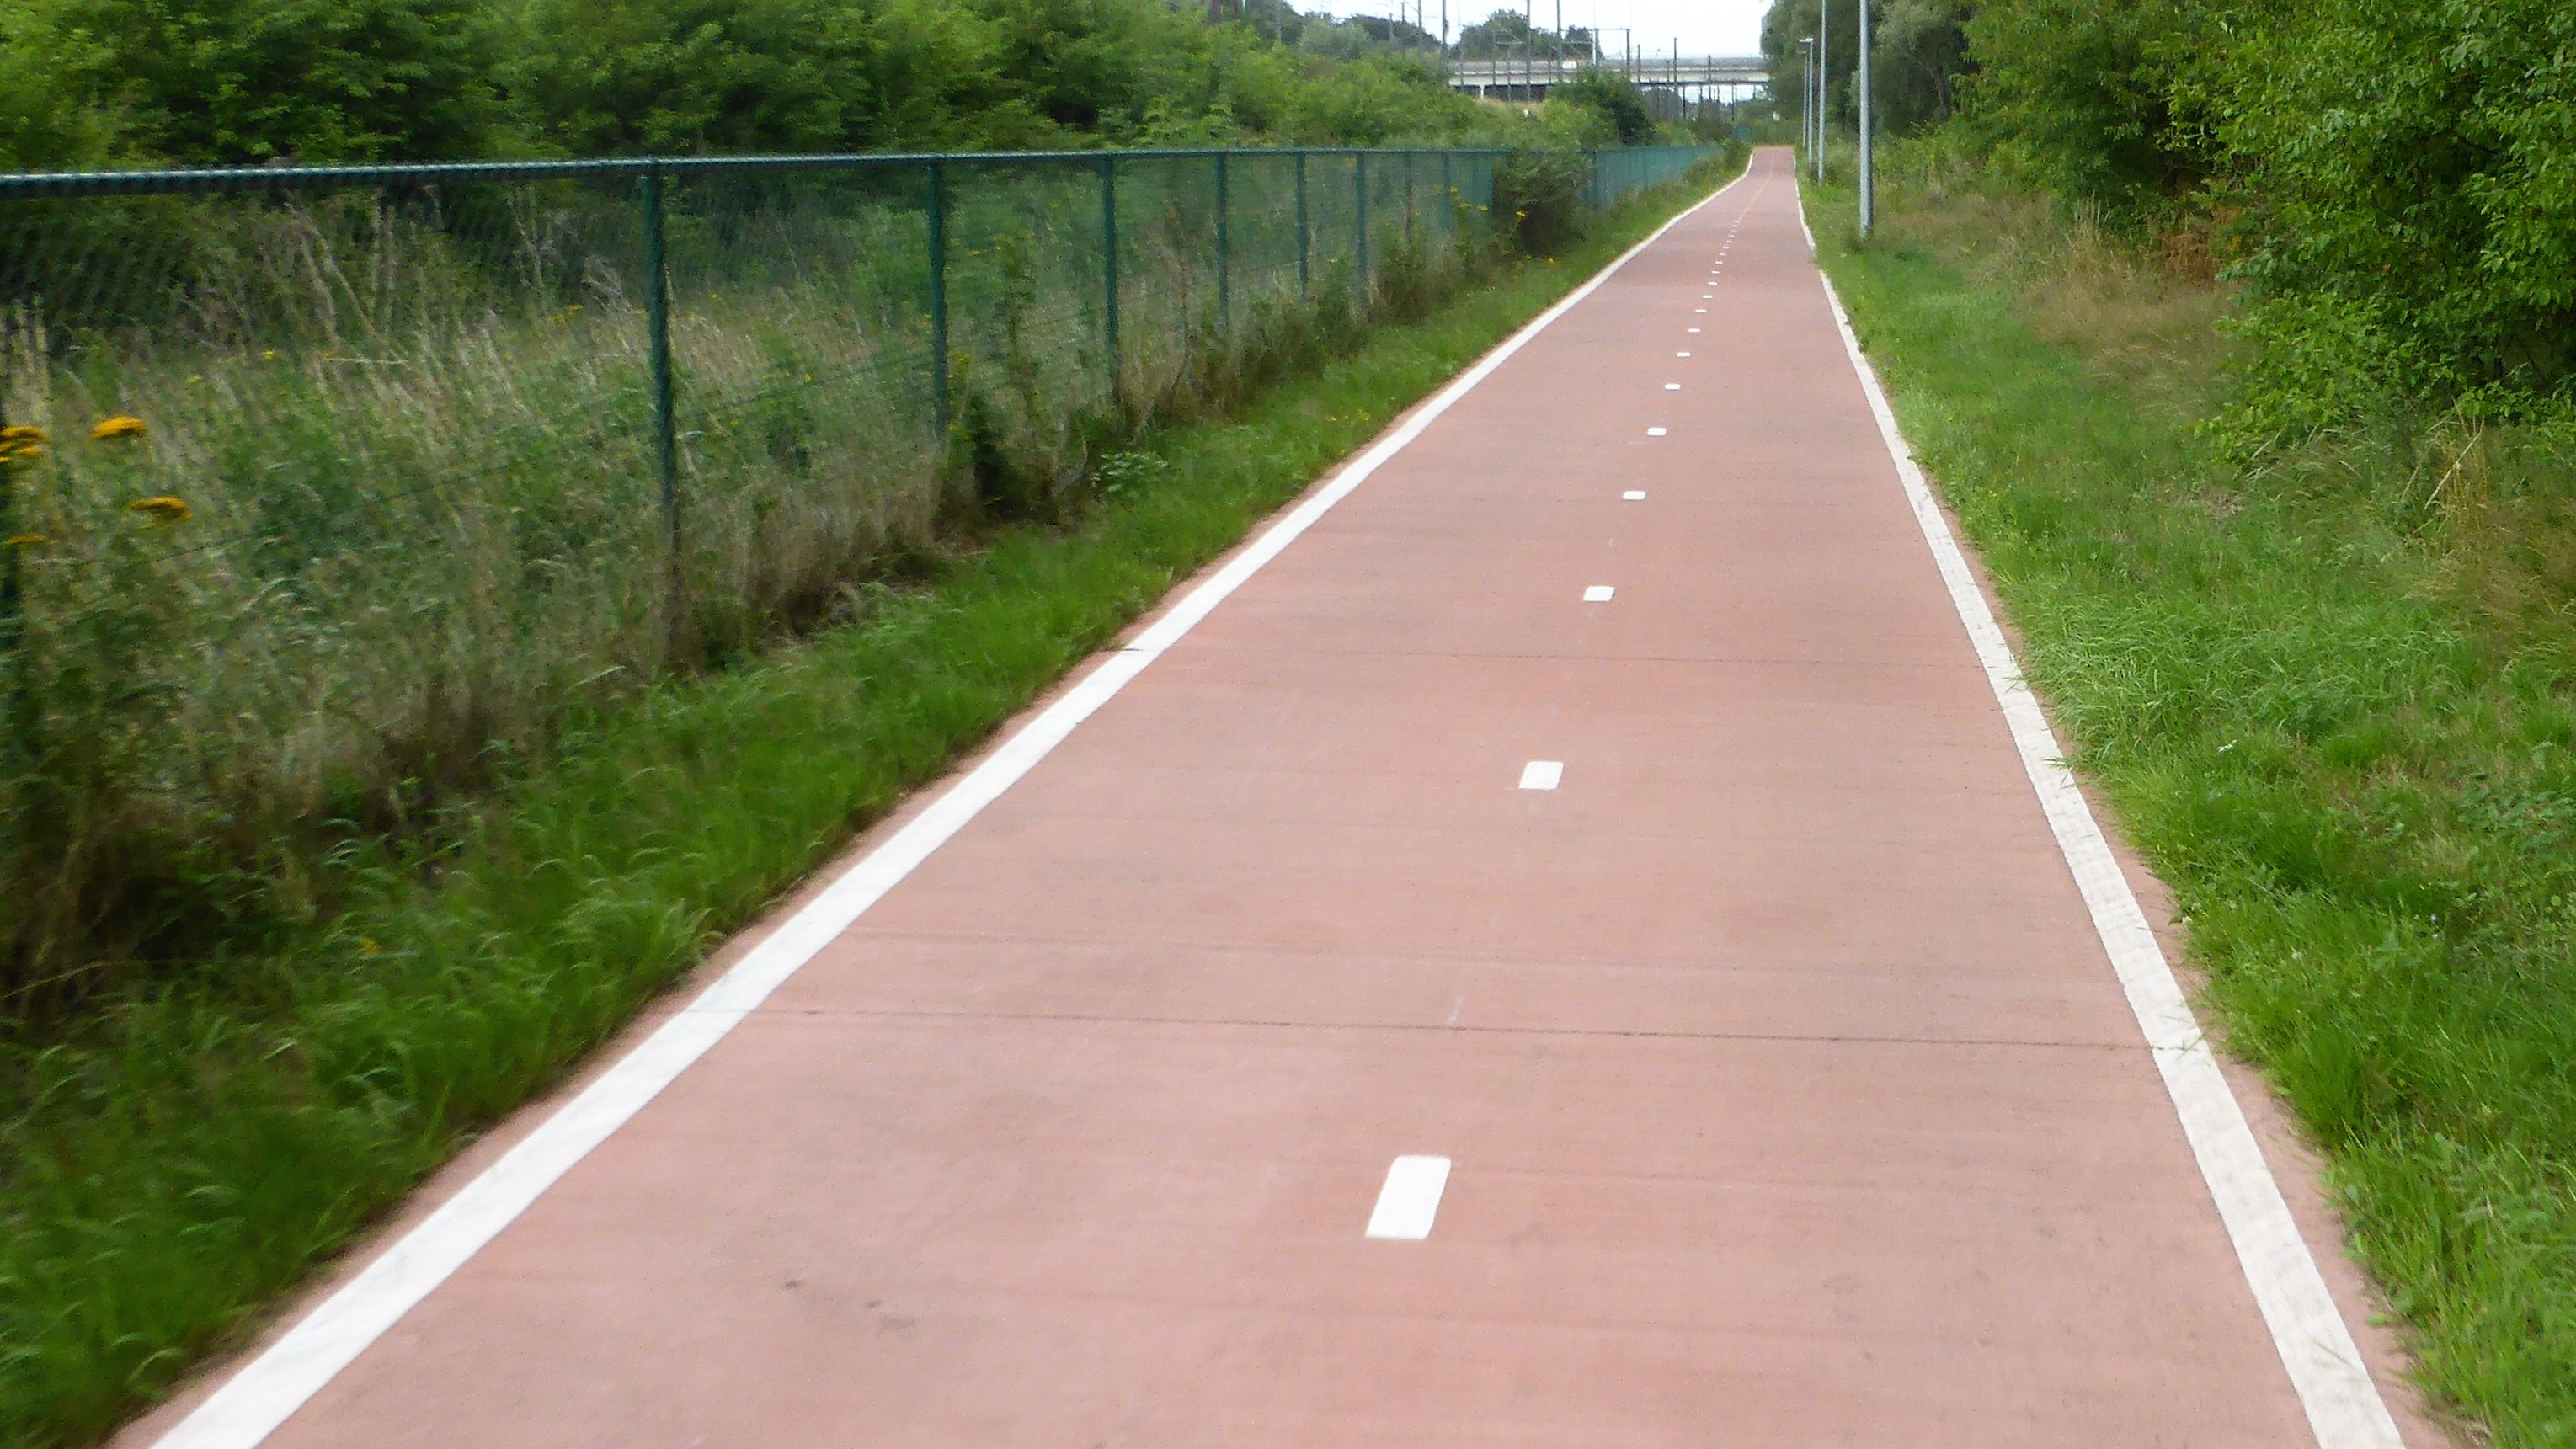 Edge and median markings on the F1 cycle highway Antwerp - Brussels